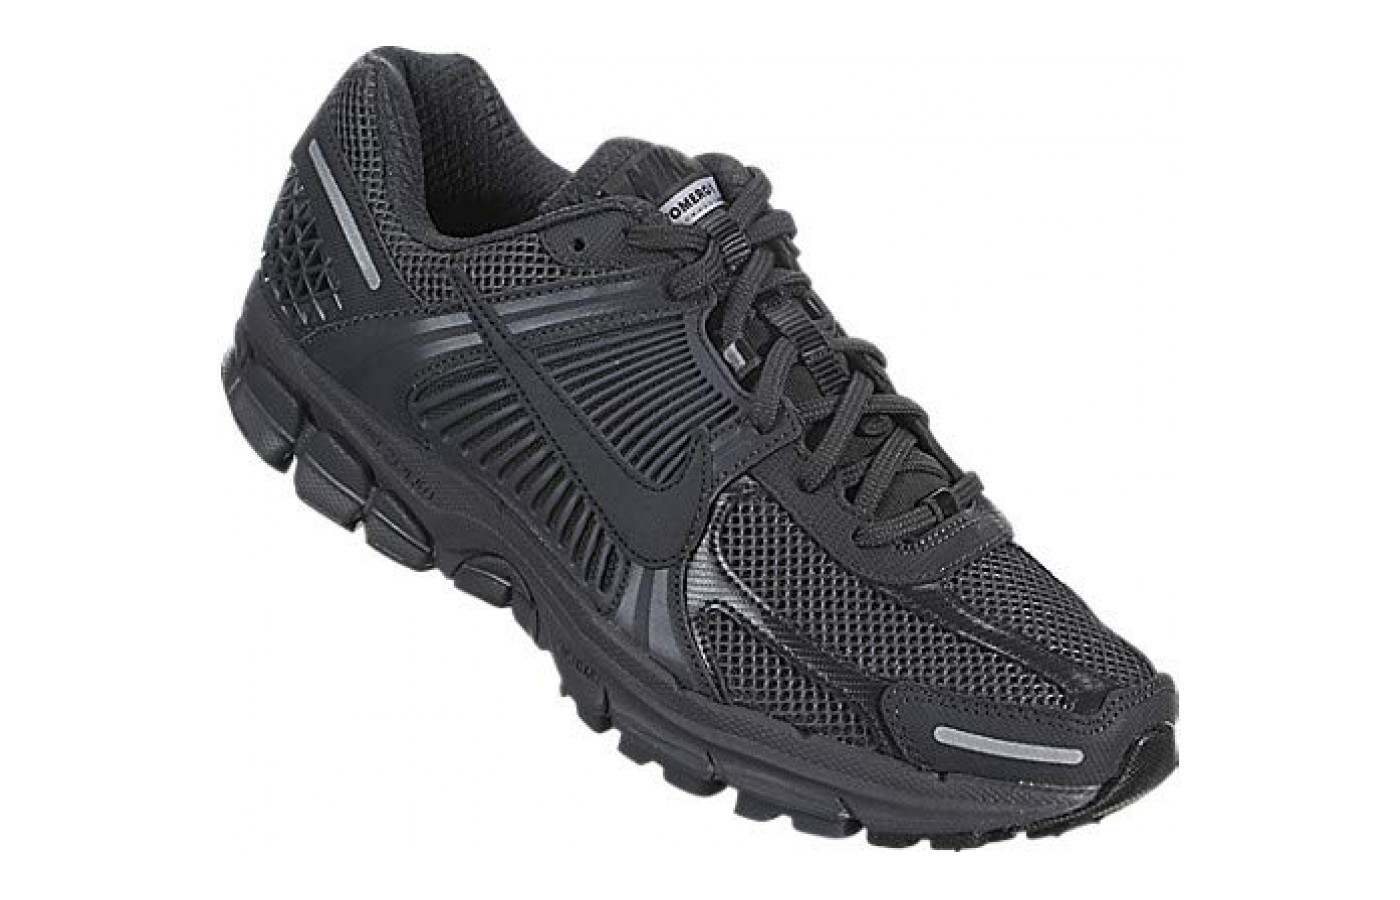 9c469bbe45a1b Nike Zoom Vomero 5 Reviewed & Rated in 2019 | WalkJogRun